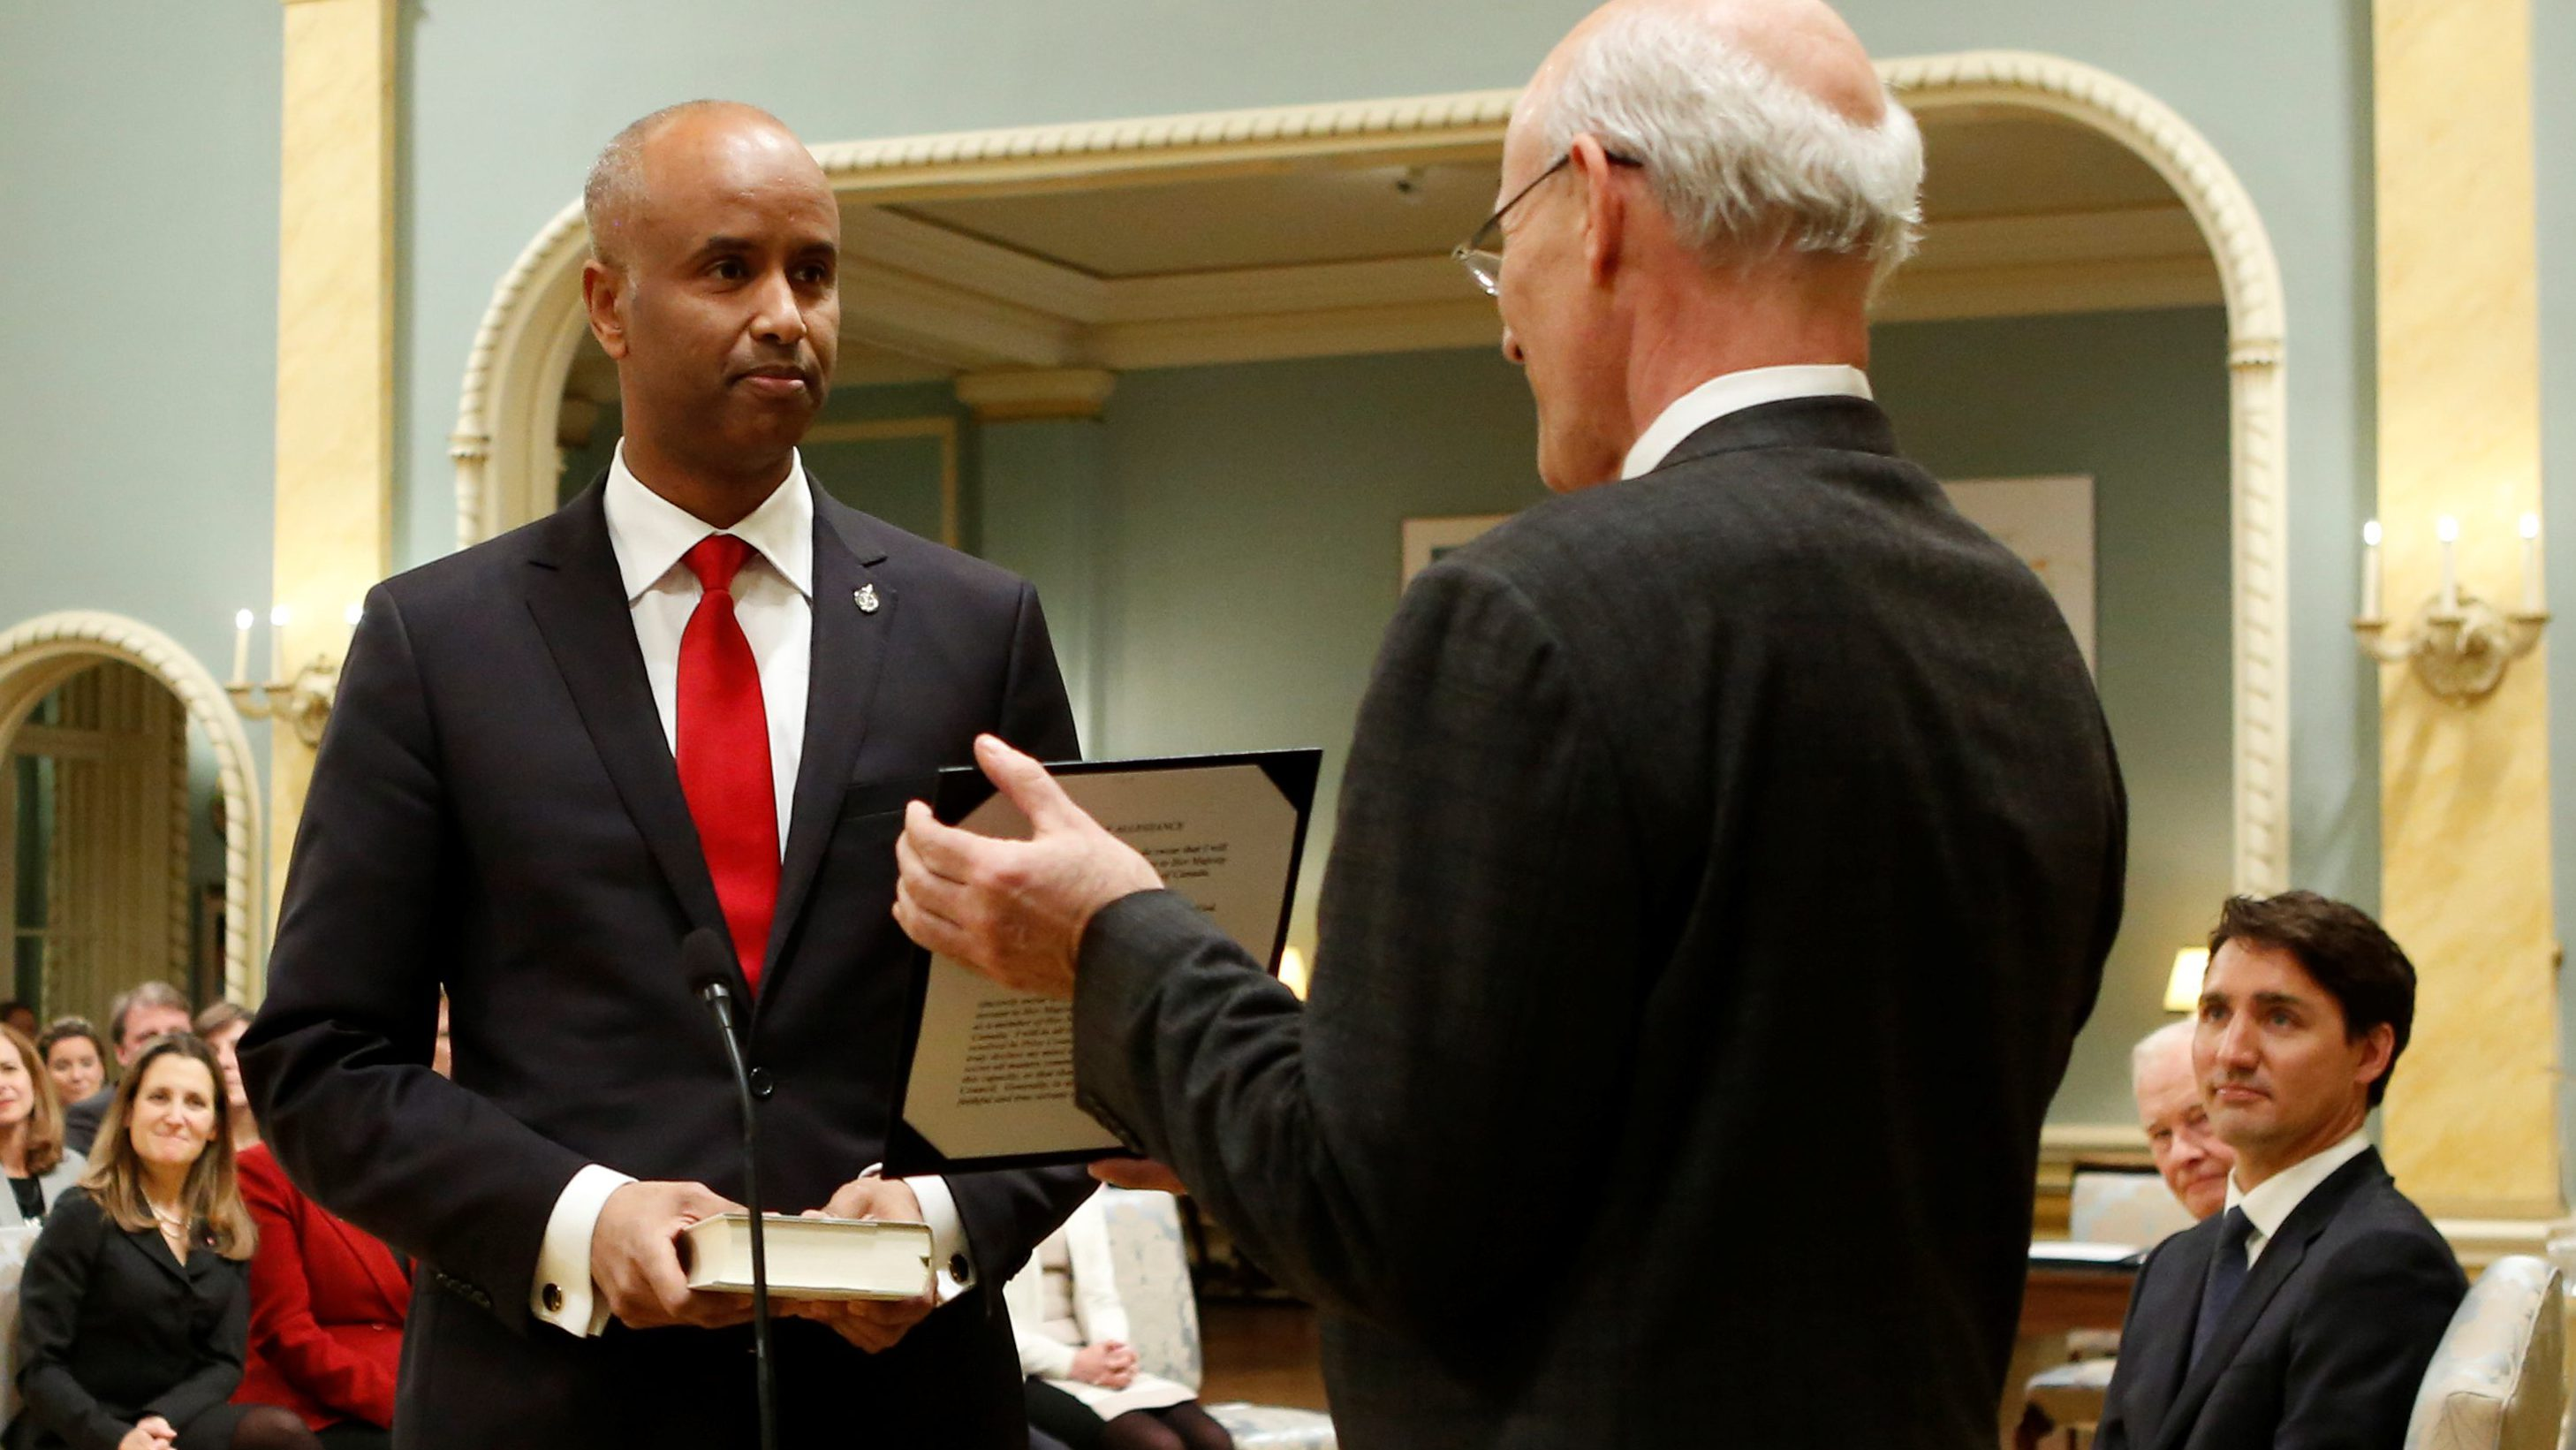 Ahmed Hussen is sworn-in as Canada's Minister of Immigration, Refugees and Citizenship during a cabinet shuffle at Rideau Hall in Ottawa, Ontario, Canada, January 10, 2017.